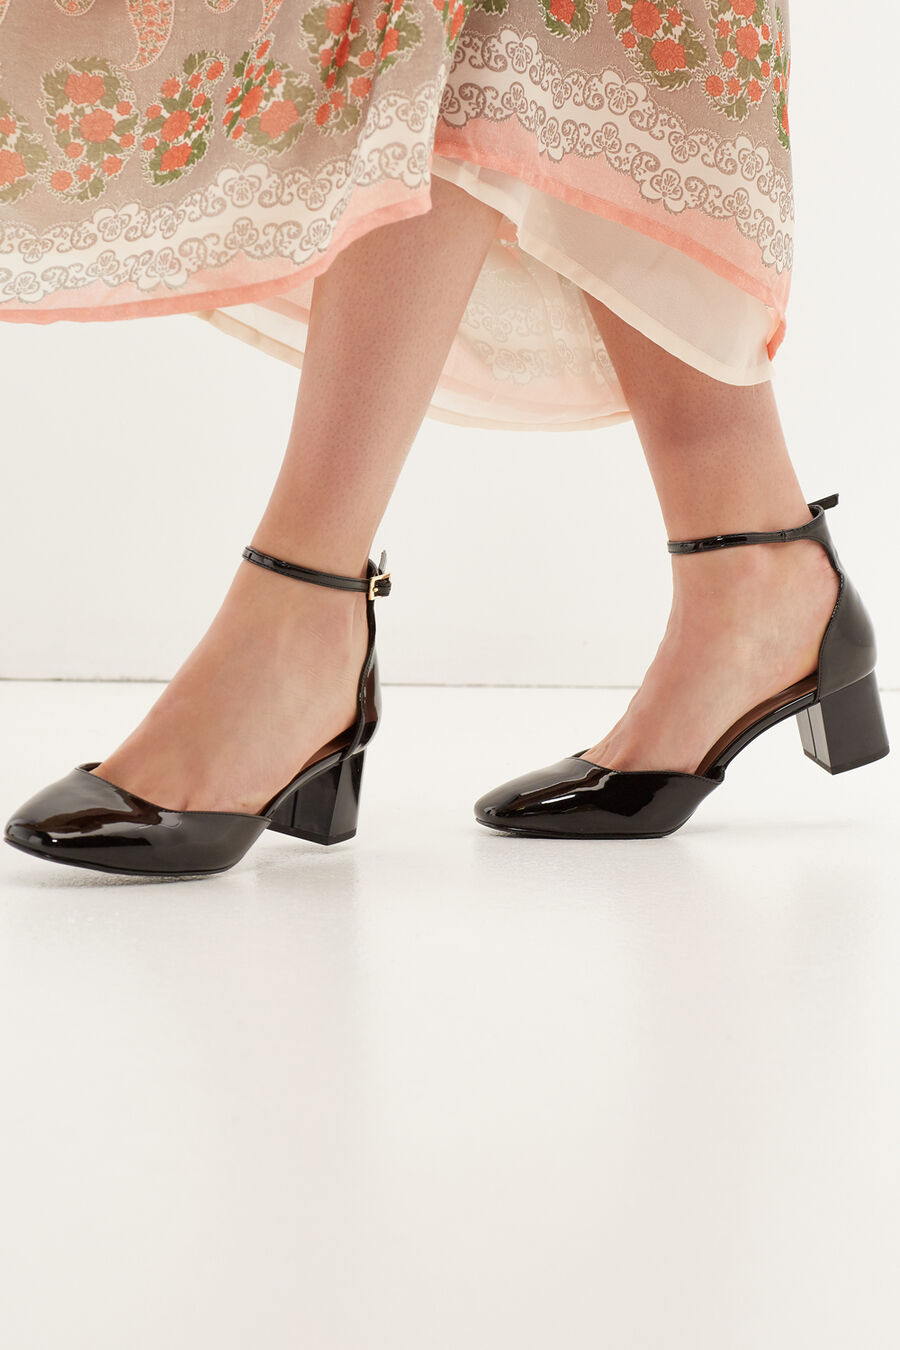 Patent leather wing tip heels